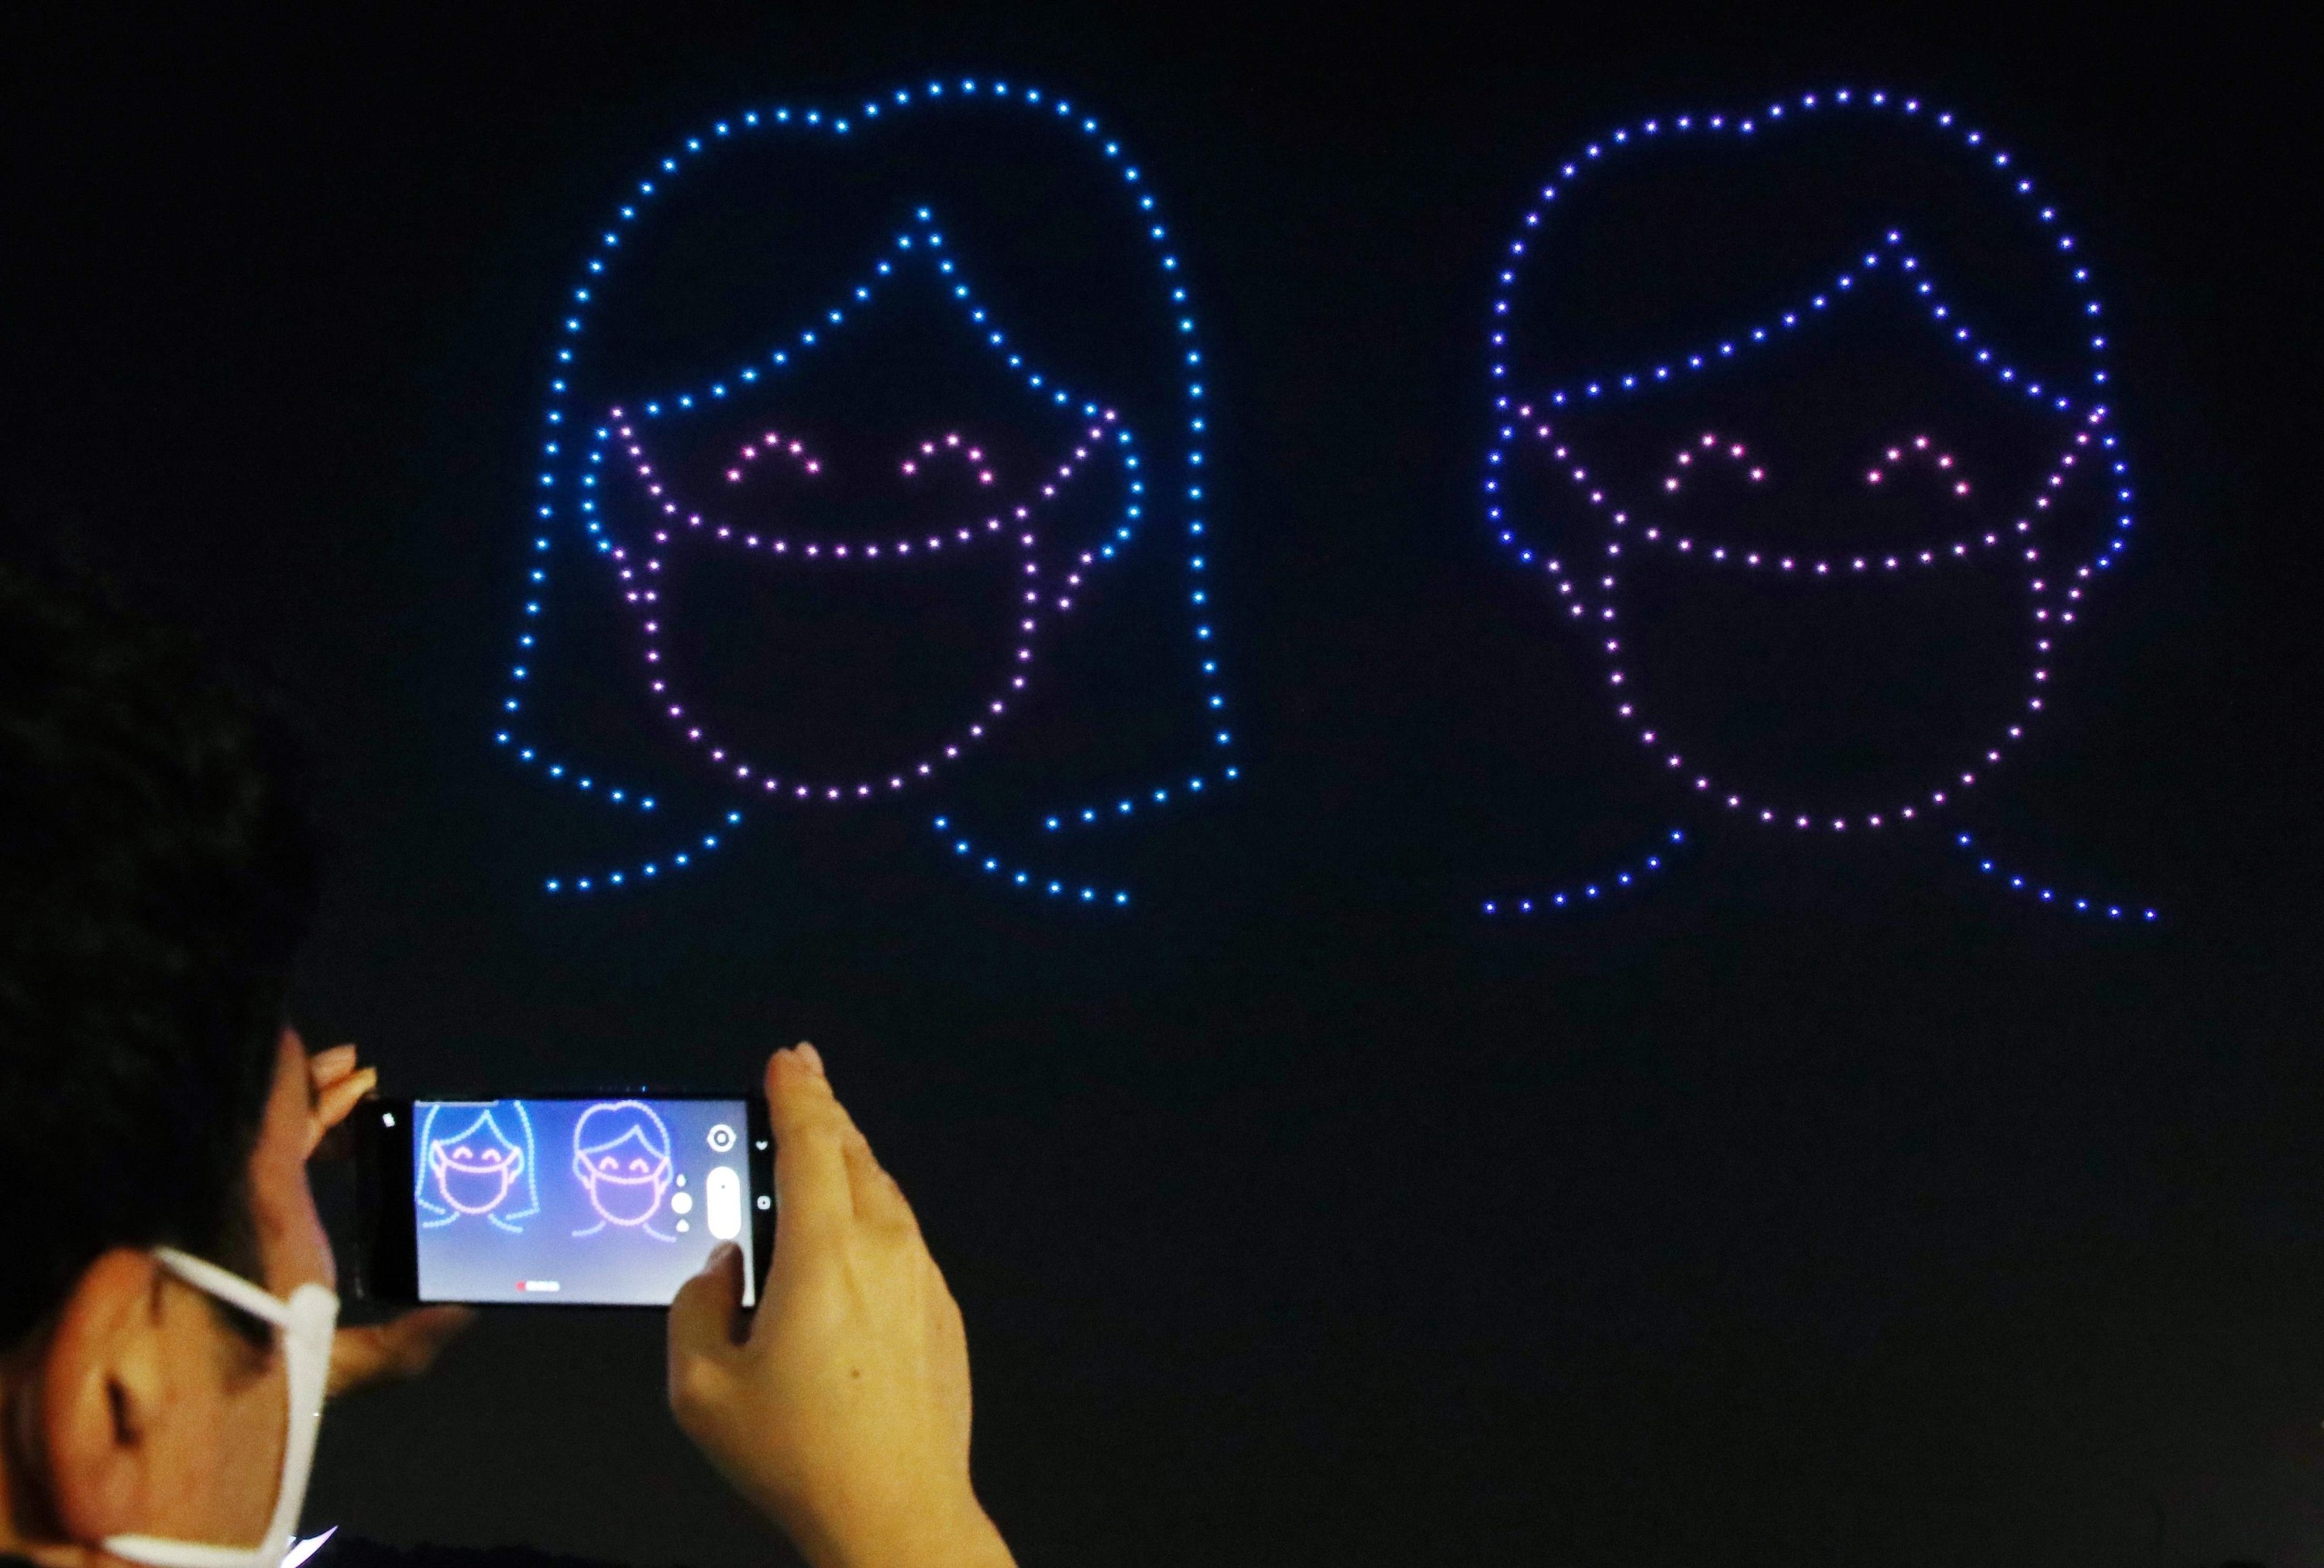 A spectator takes photos as 315 illuminated drones perform a routine to display messages and images of support for South Korea amid the coronavirus pandemic, Seoul, Nov. 13, 2020. (AFP Photo)